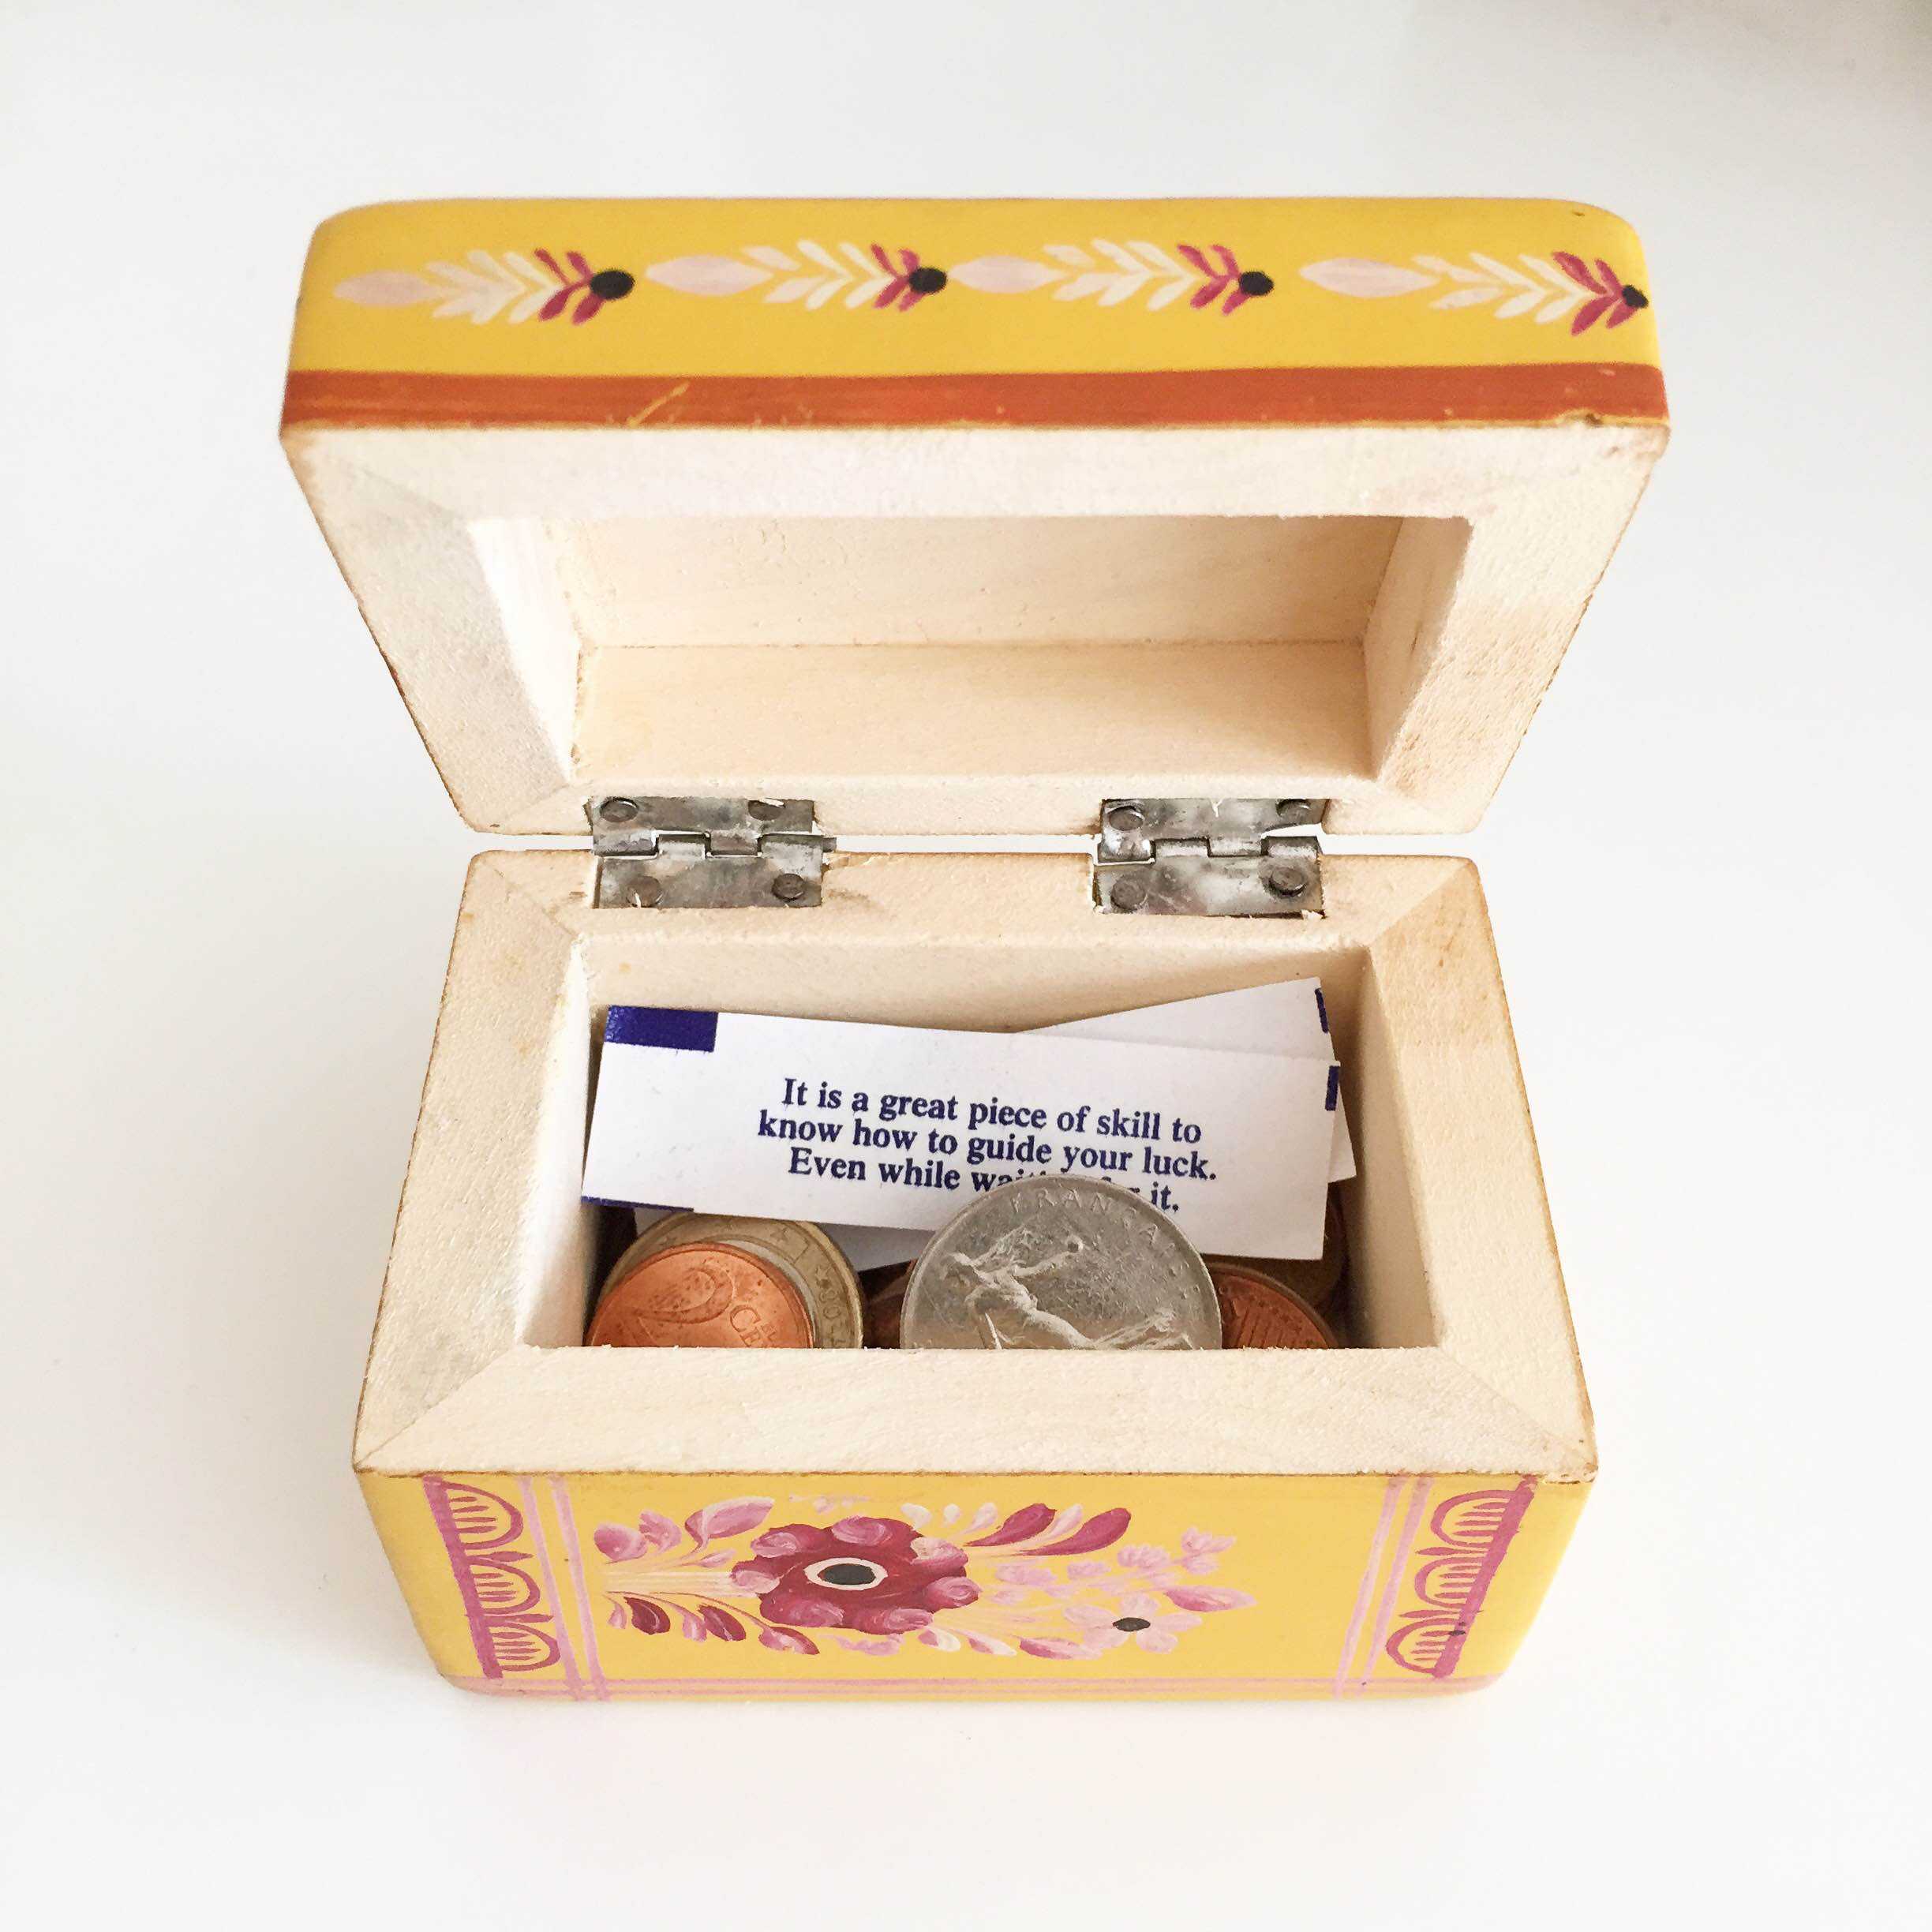 Small boxes make for good organizers (and surprises). I opened this one recently to find some spare Euros (handy, since I was traveling to Italy), an old Franc (quite the relic!) and a sweet fortune with poignant advice.